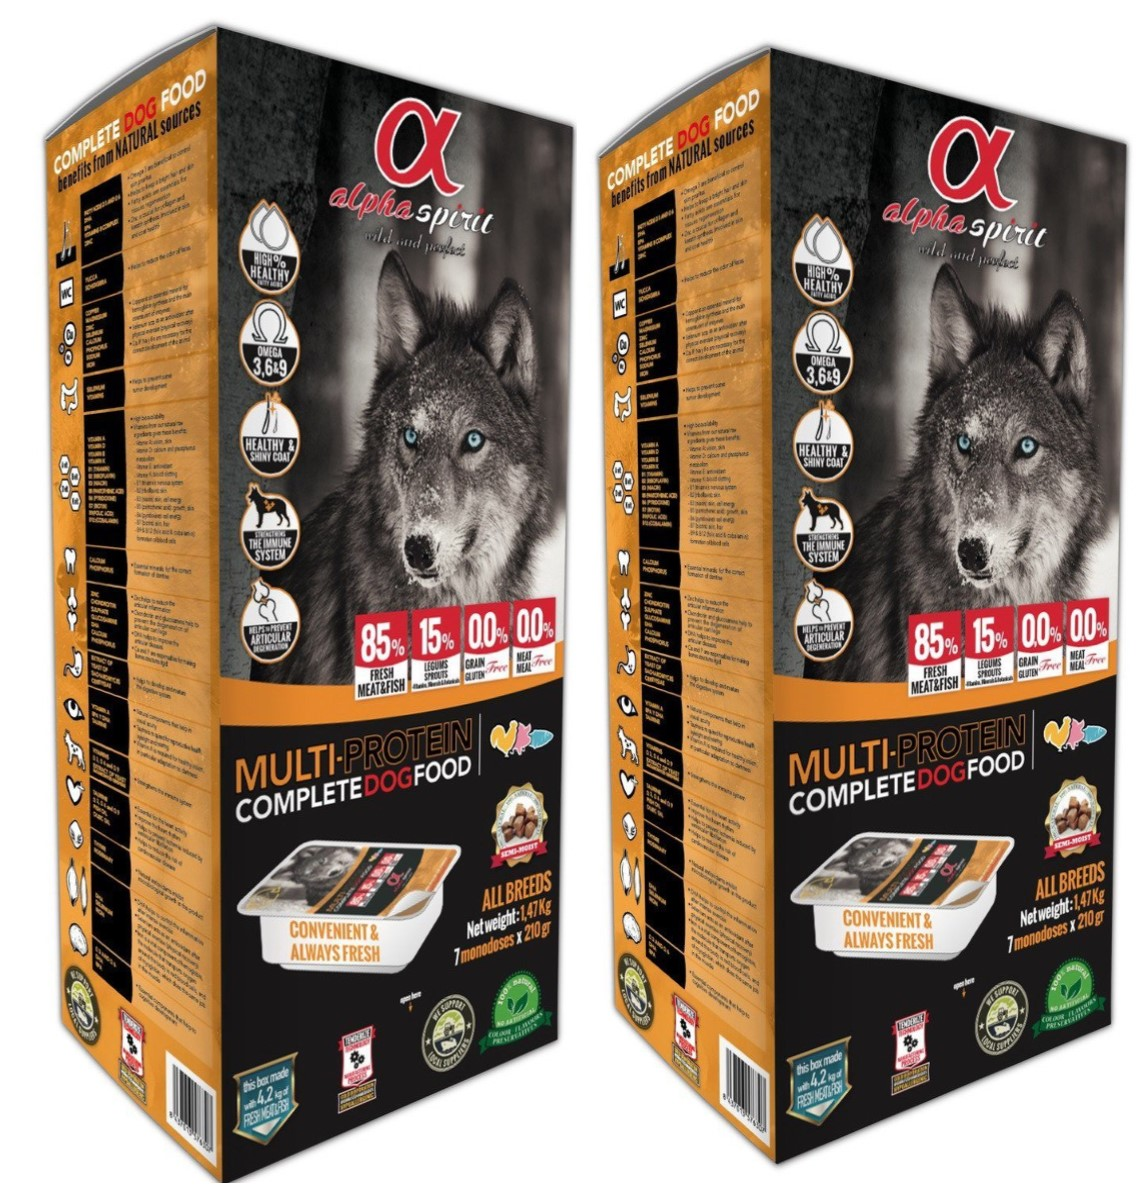 Alpha Spirit Multi Protein Dog Food 9.45kg